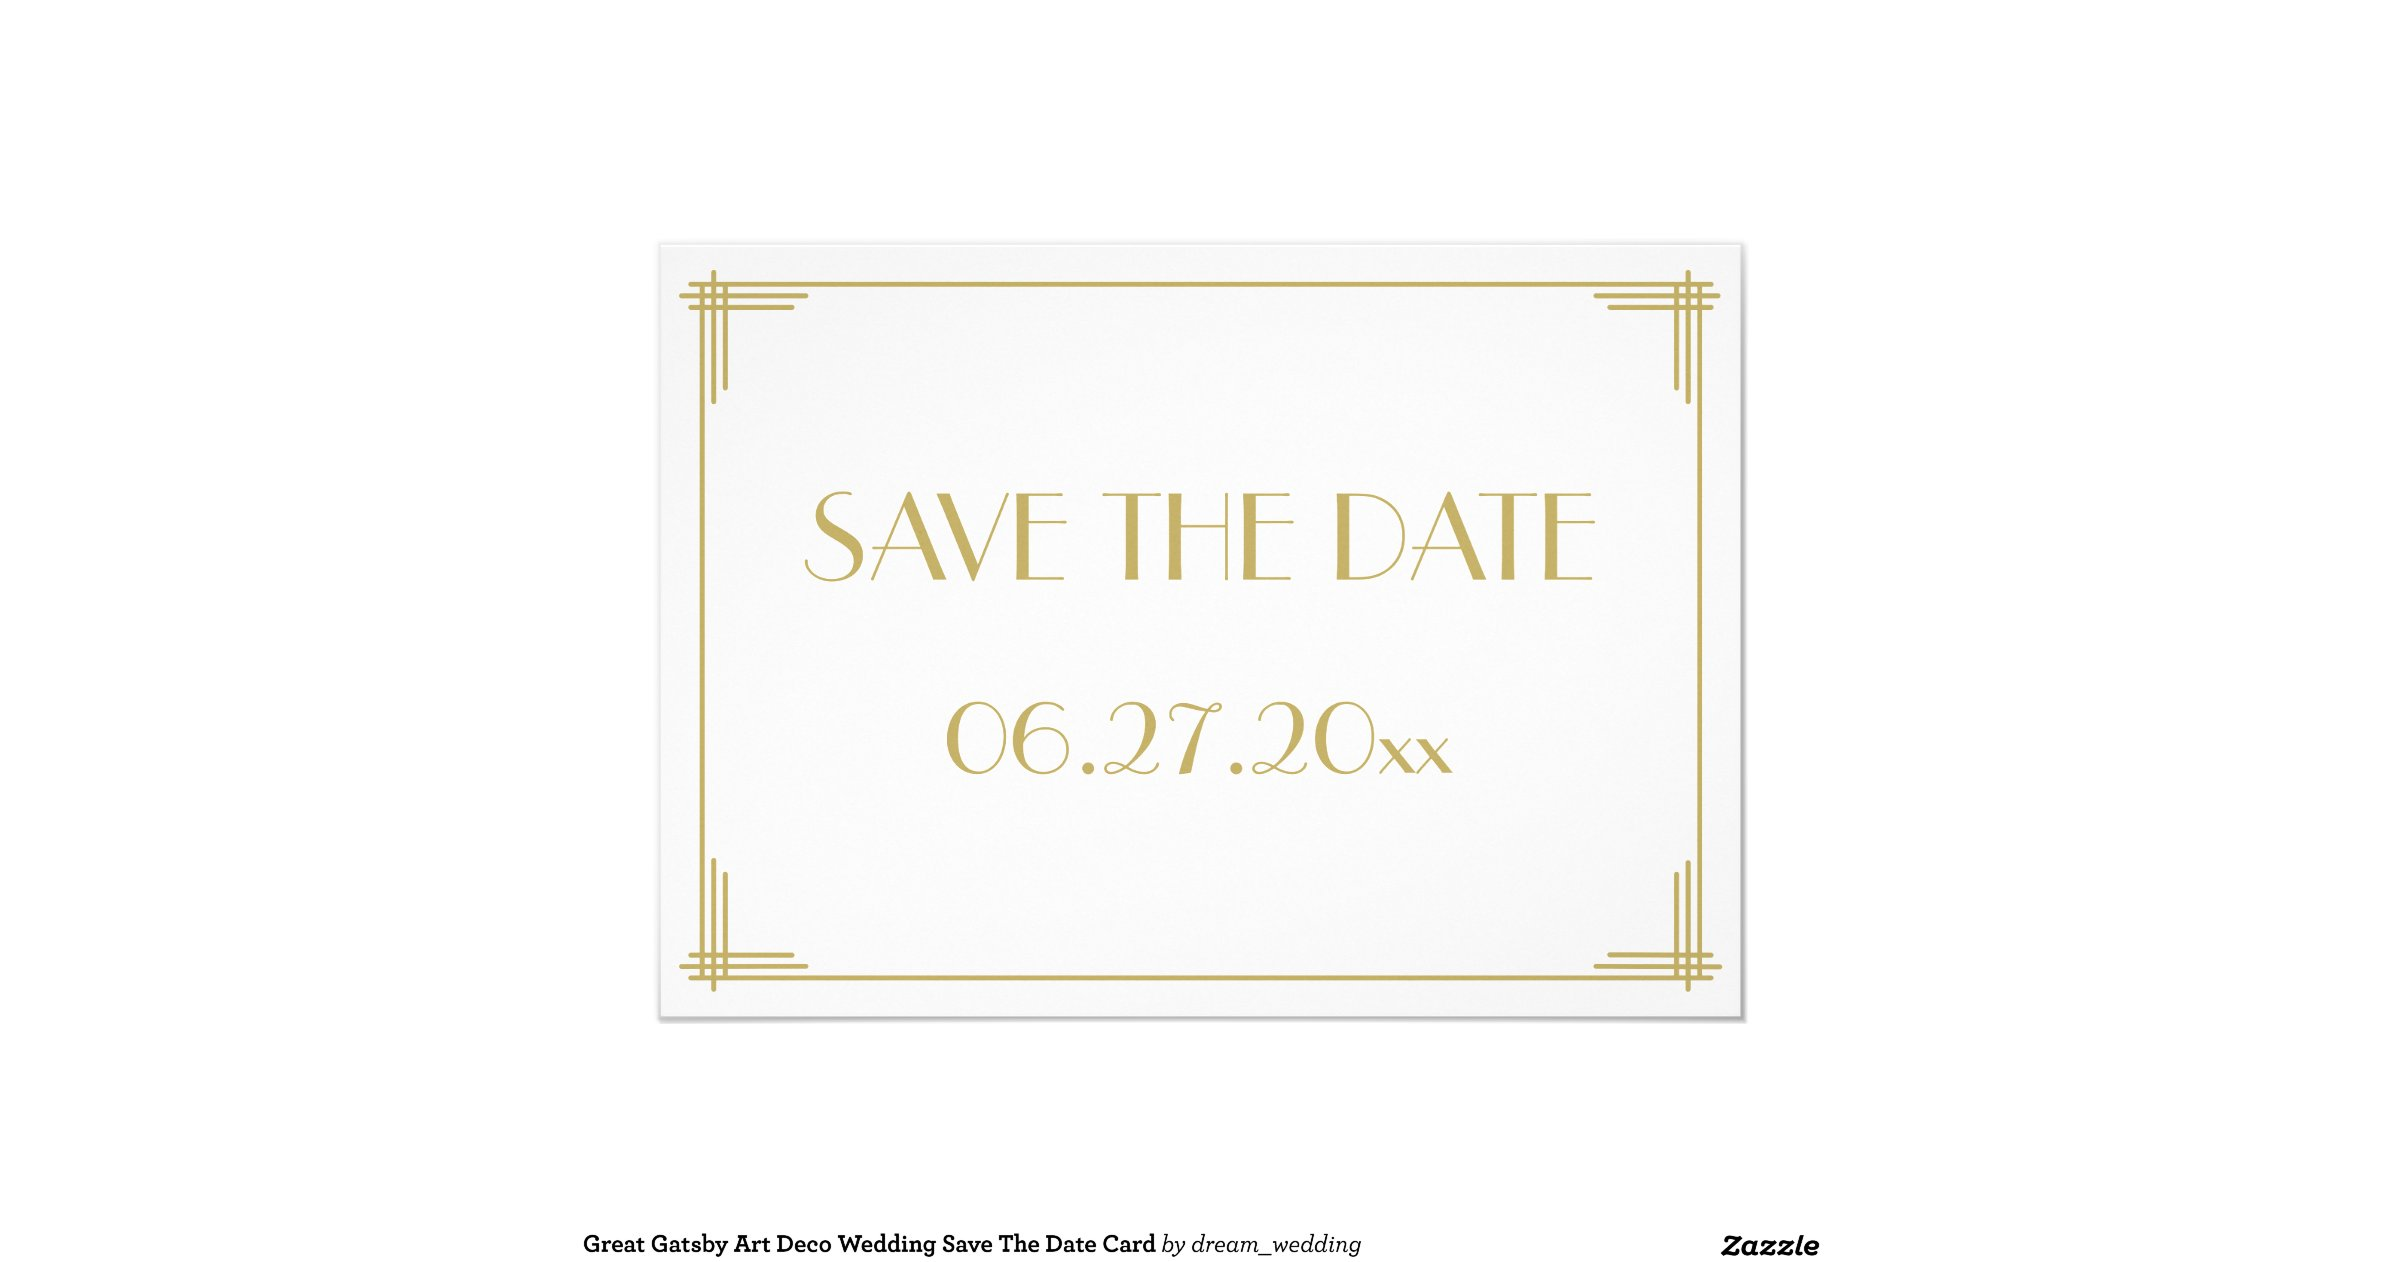 great gatsby art deco wedding save the date card zazzle. Black Bedroom Furniture Sets. Home Design Ideas